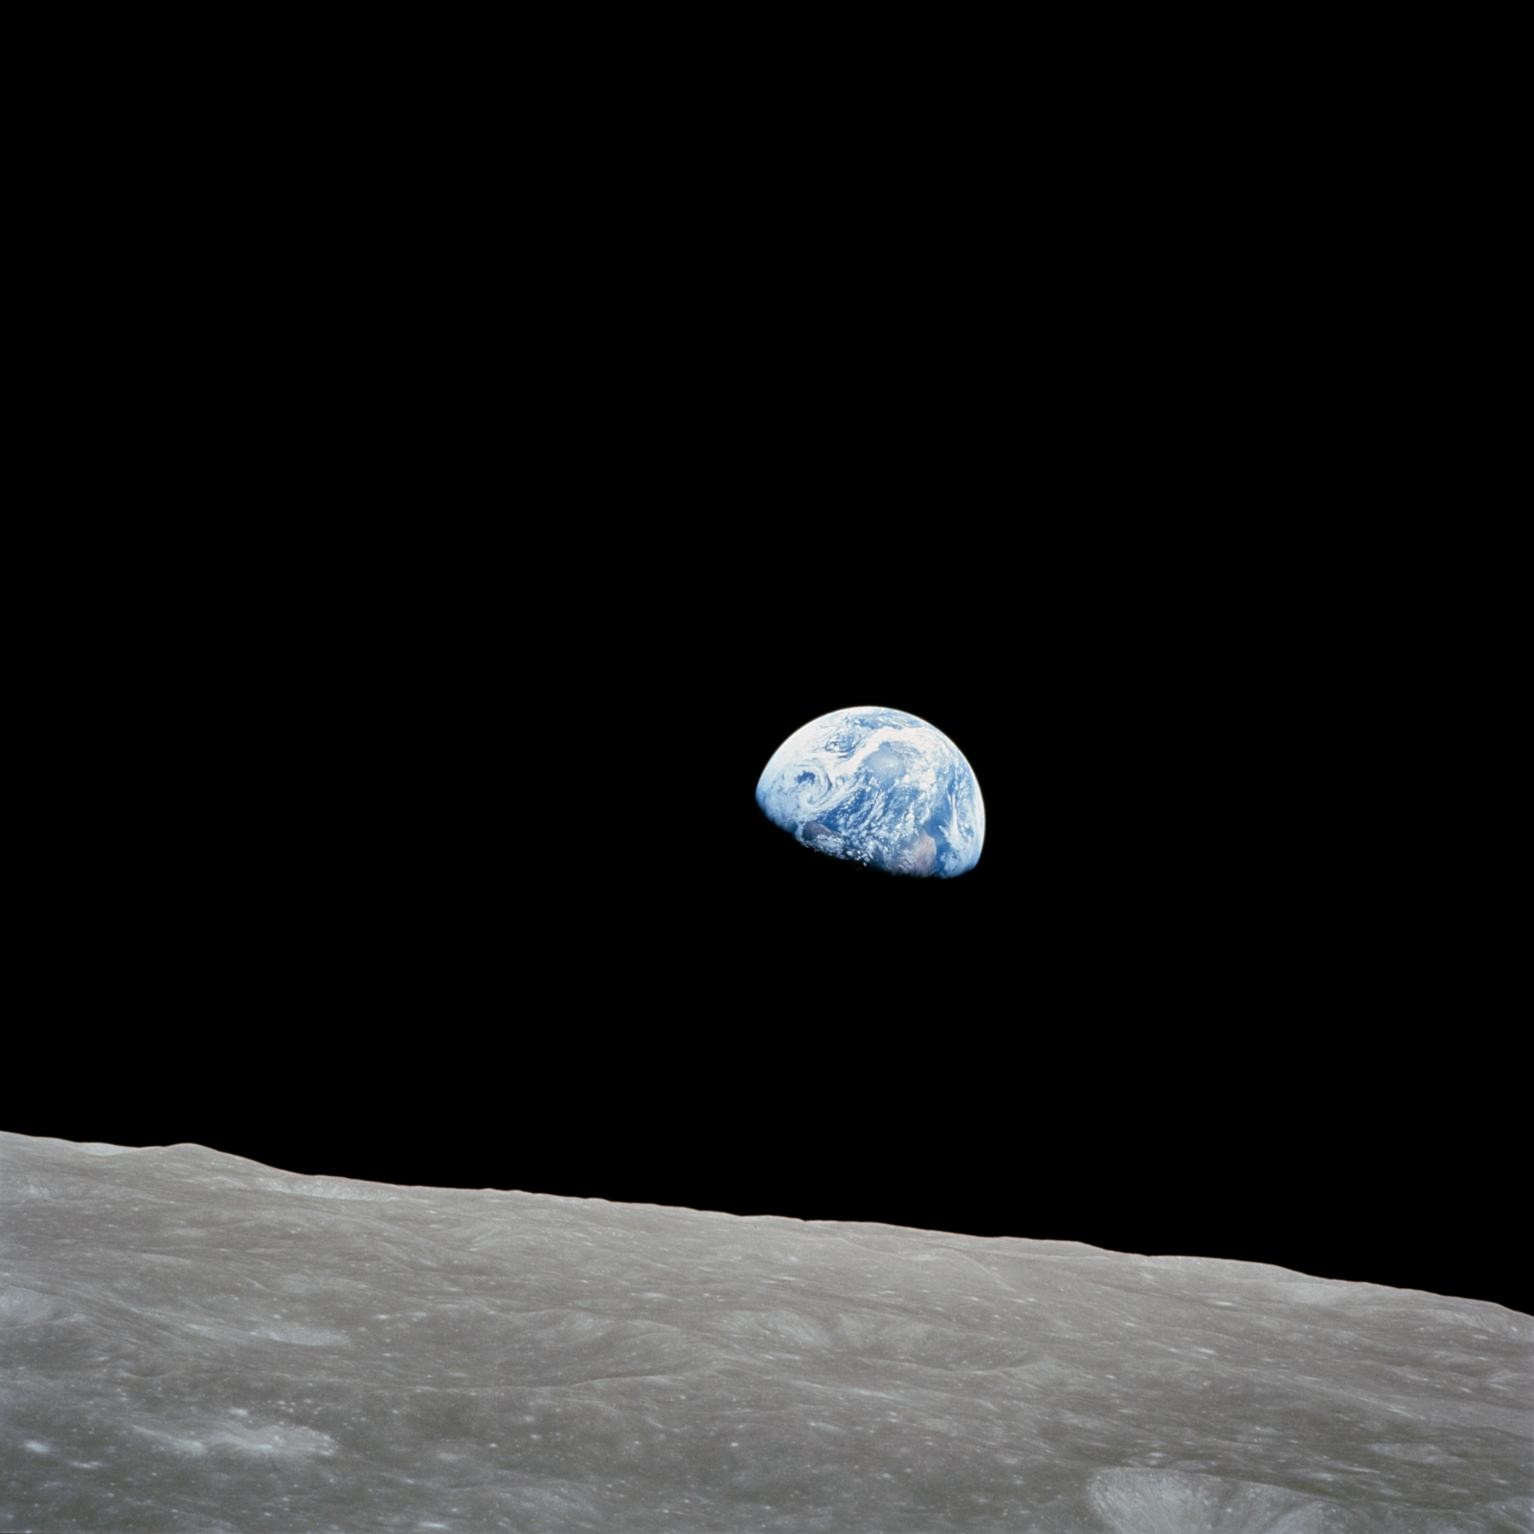 Earthrise photo from Apollo 8 Mission